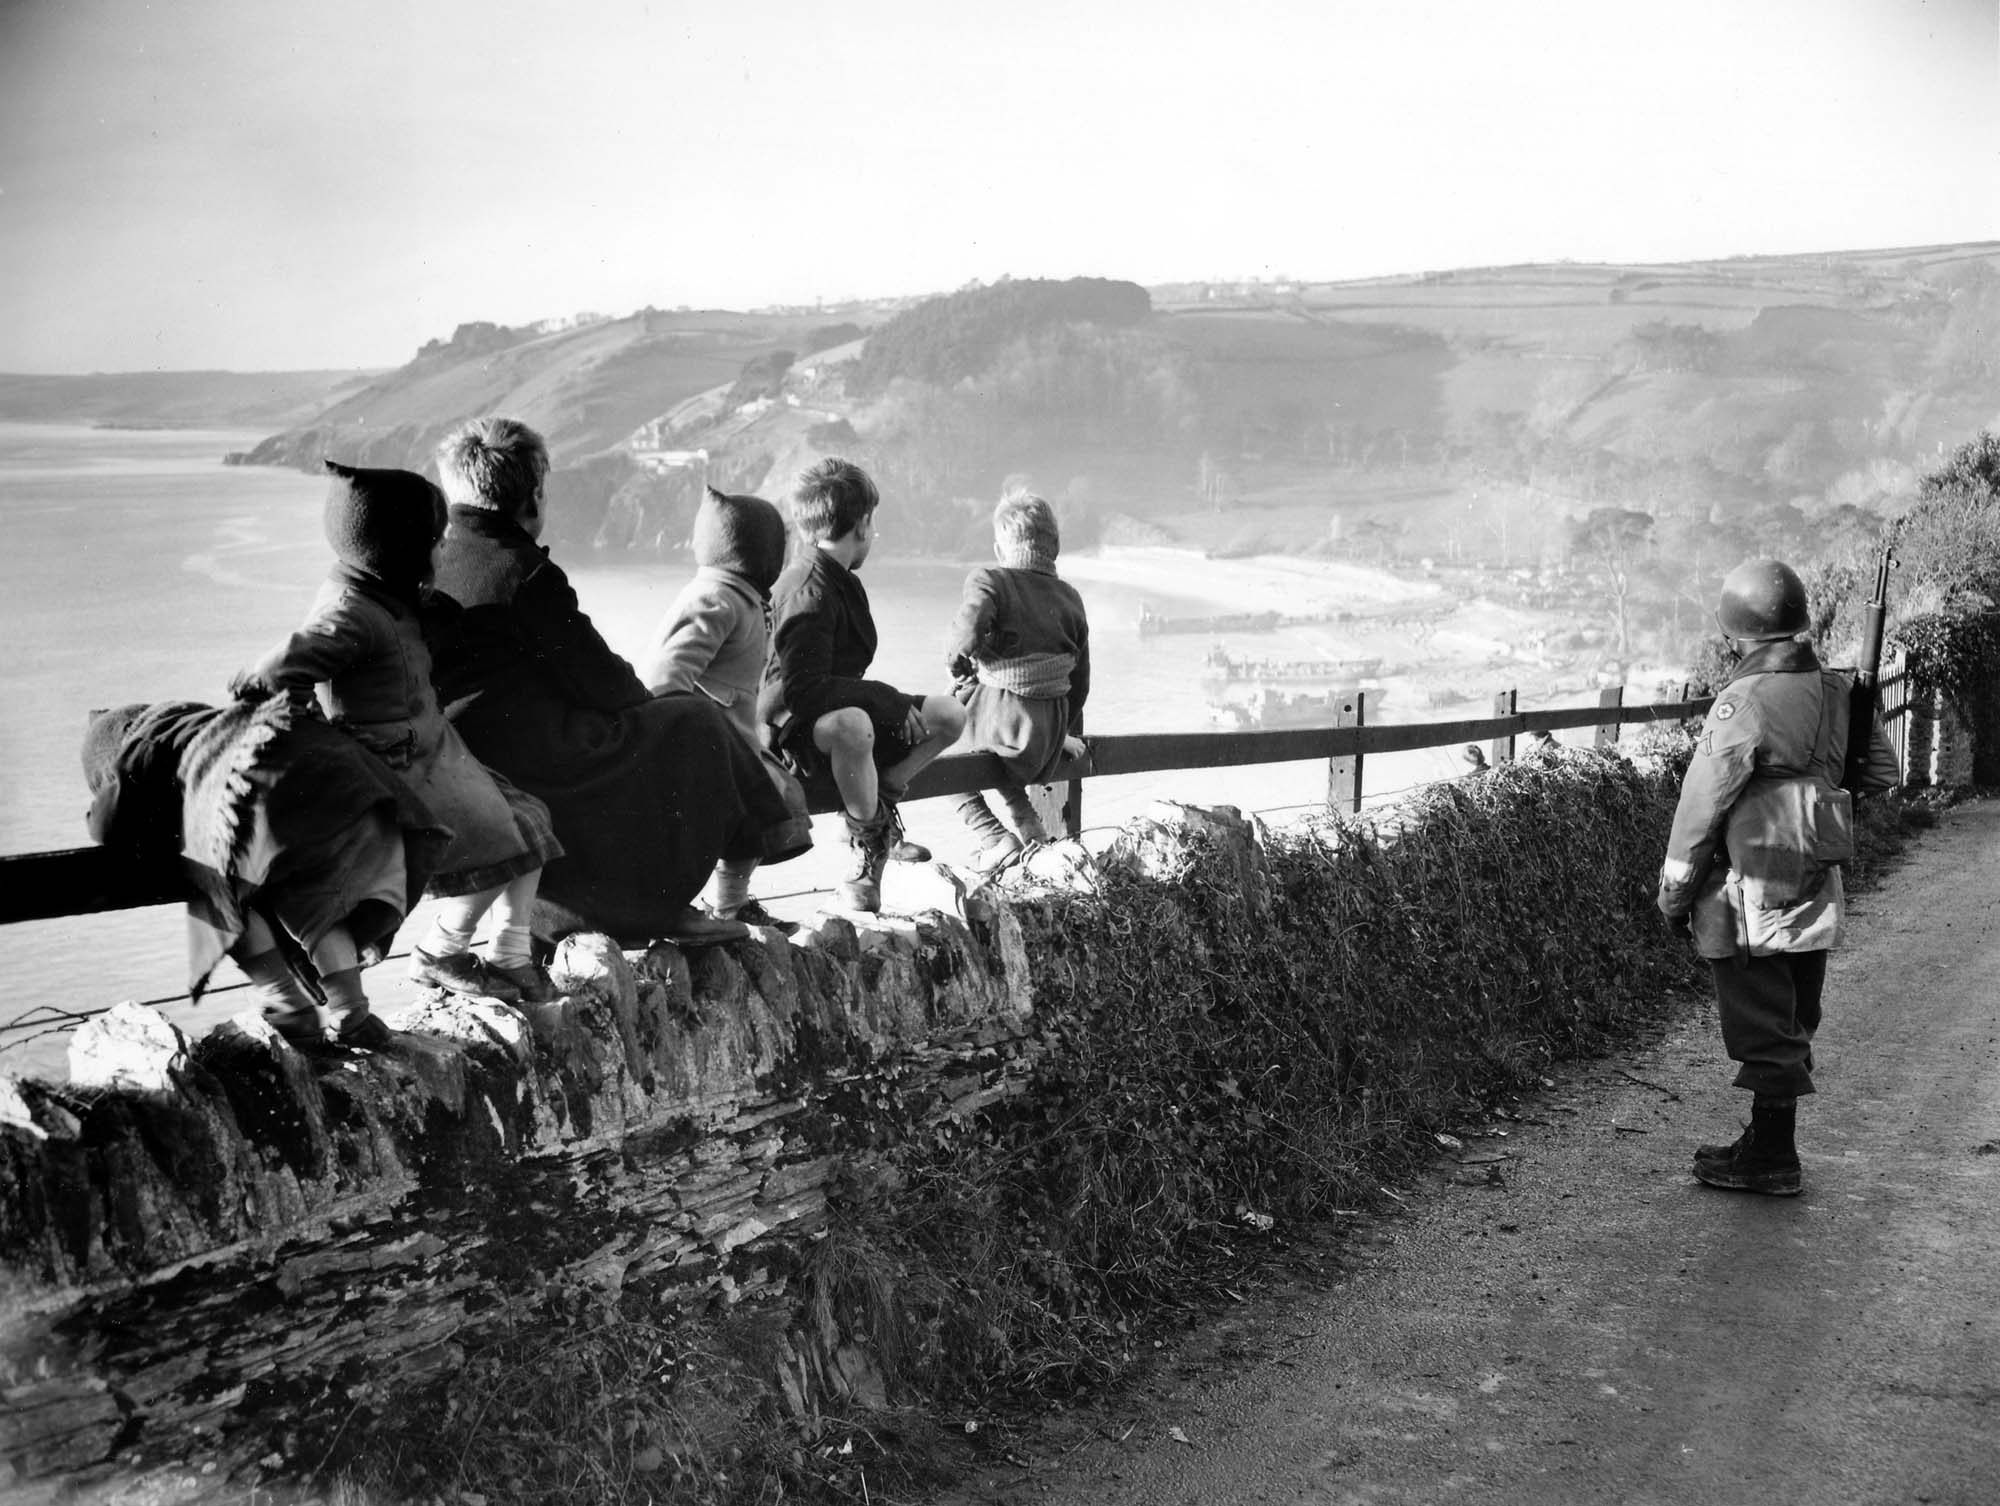 a black and white photo of children on a country lanne looking down onto a beach as a soldier stands nearby